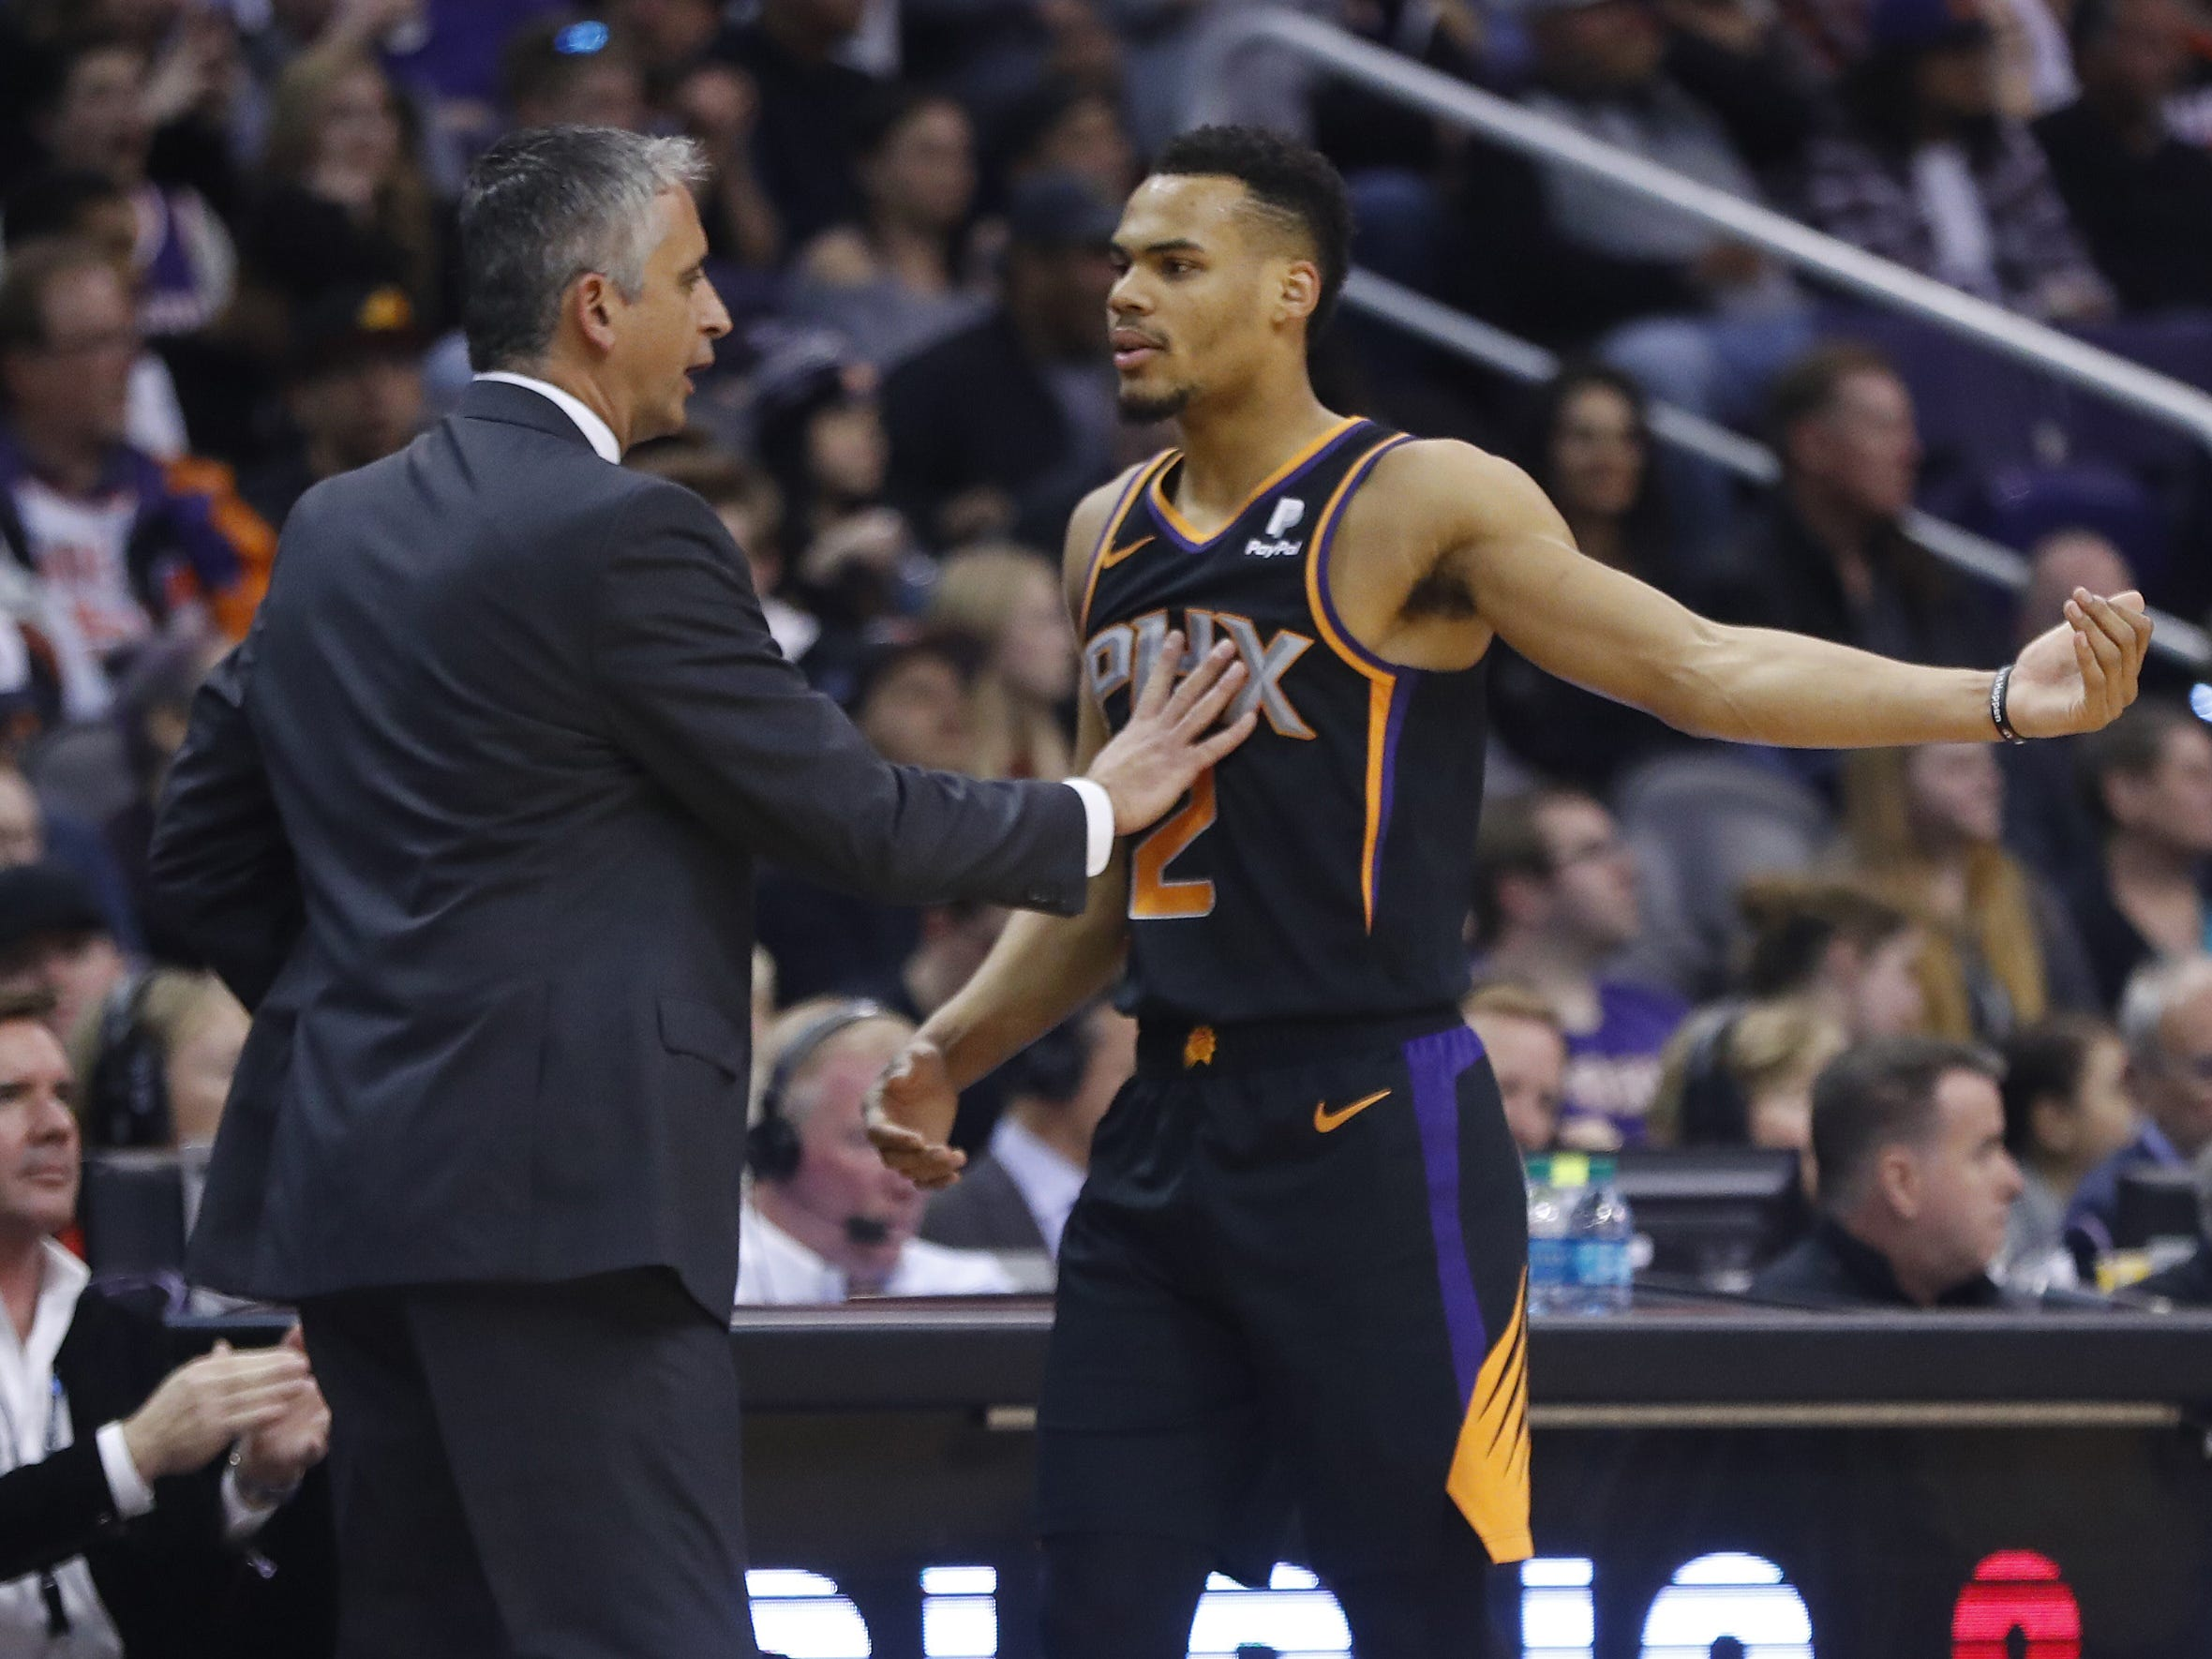 Suns' Igor Kokoskov puts his hand on Elie Okobo (2) as they talk during the second half at Talking Stick Resort Arena in Phoenix, Ariz. on January 4, 2019.